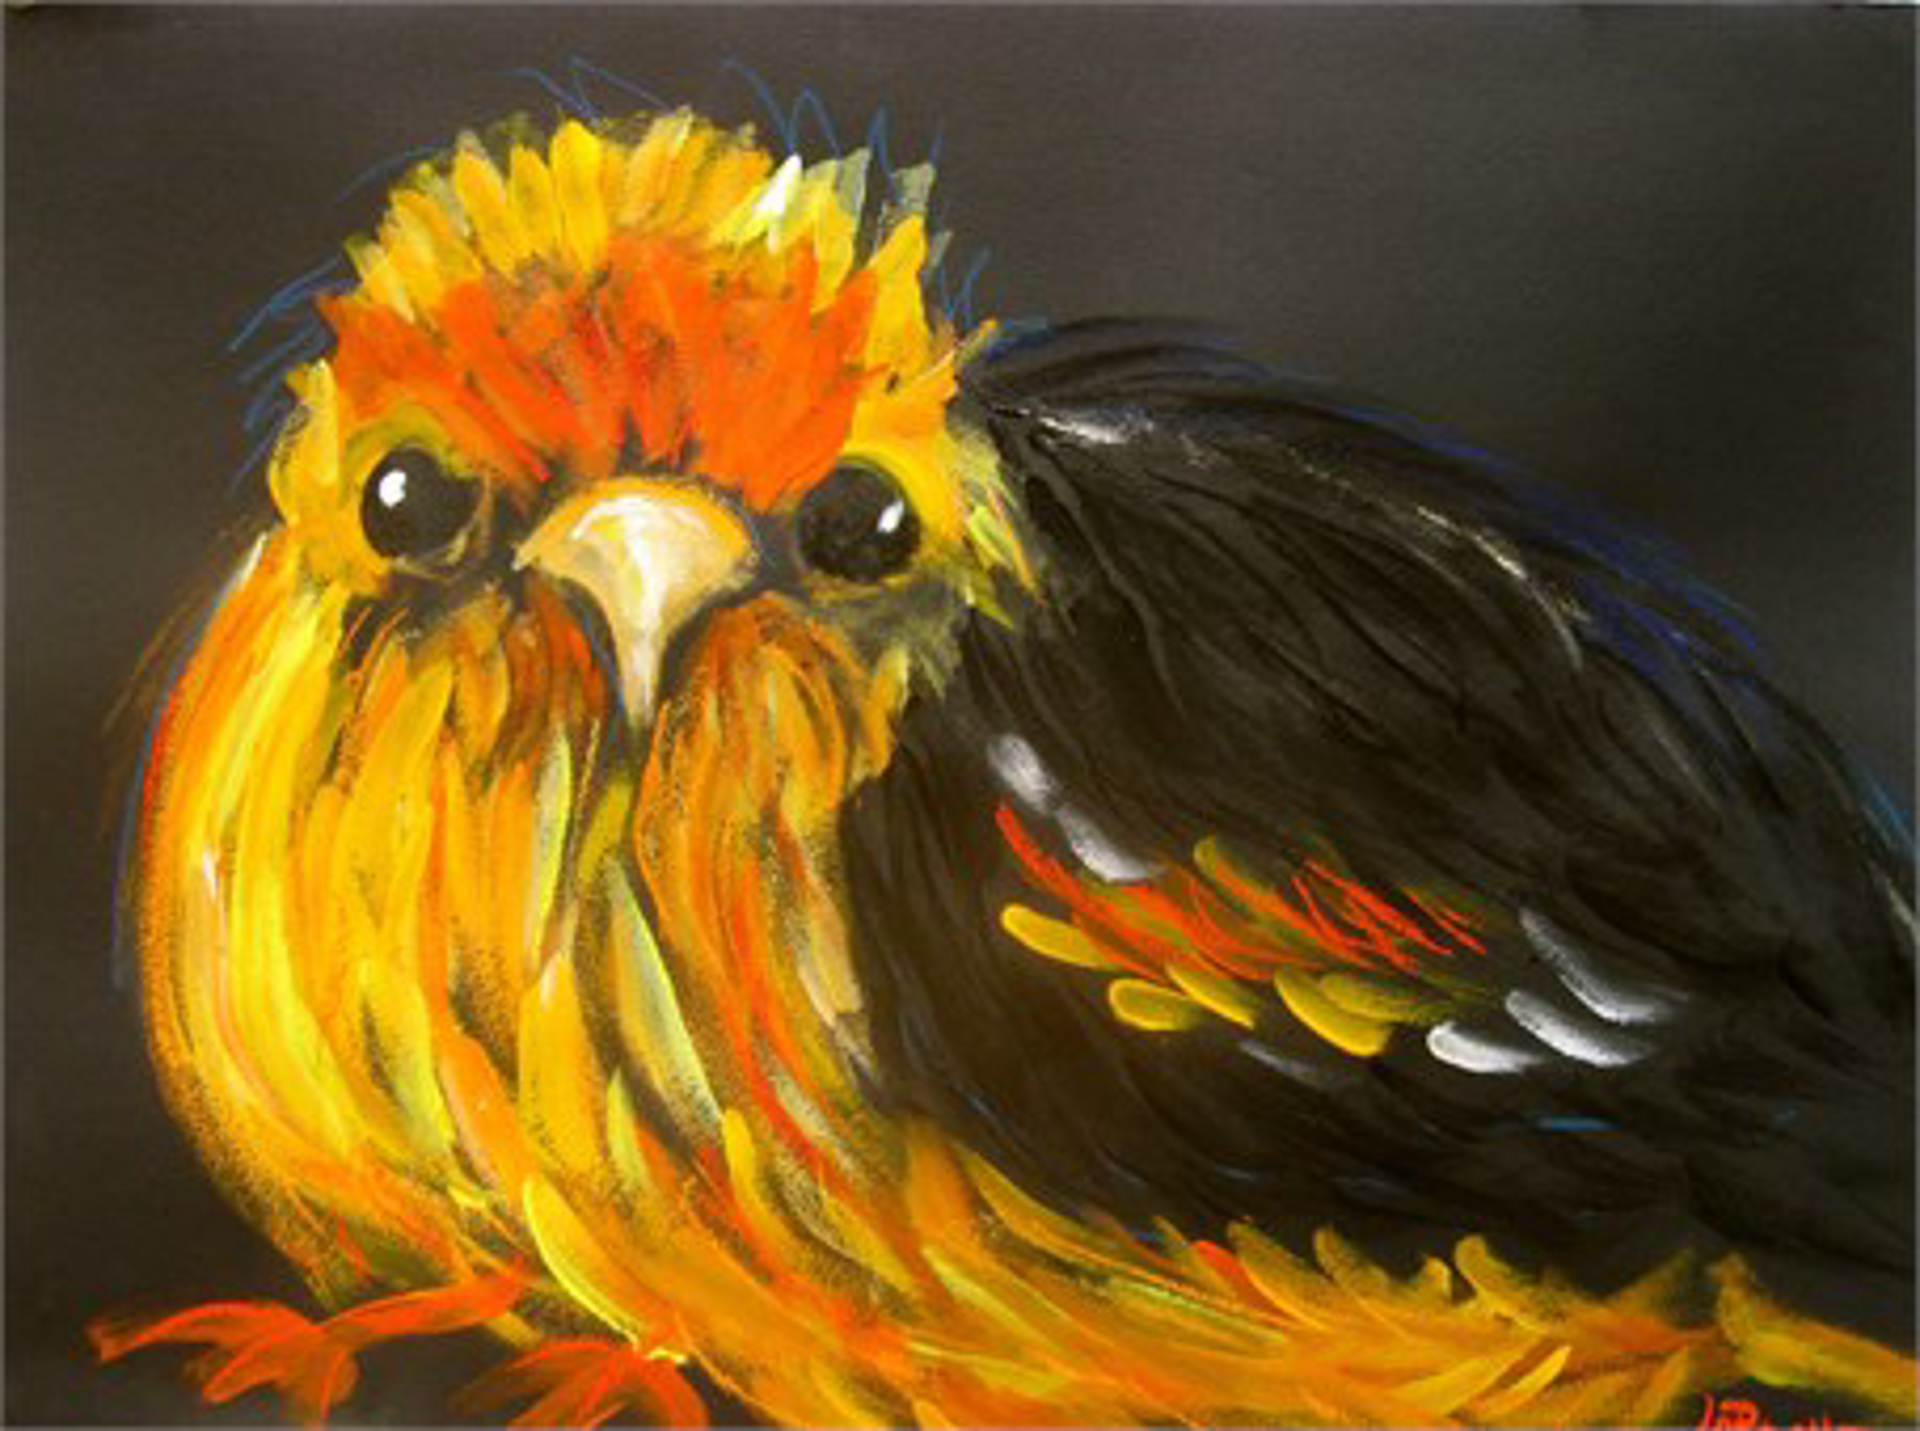 """WILD YELLOW BIRD - limited edition giclee on paper w/frame size of 30""""x38"""" by Carole LaRoche"""